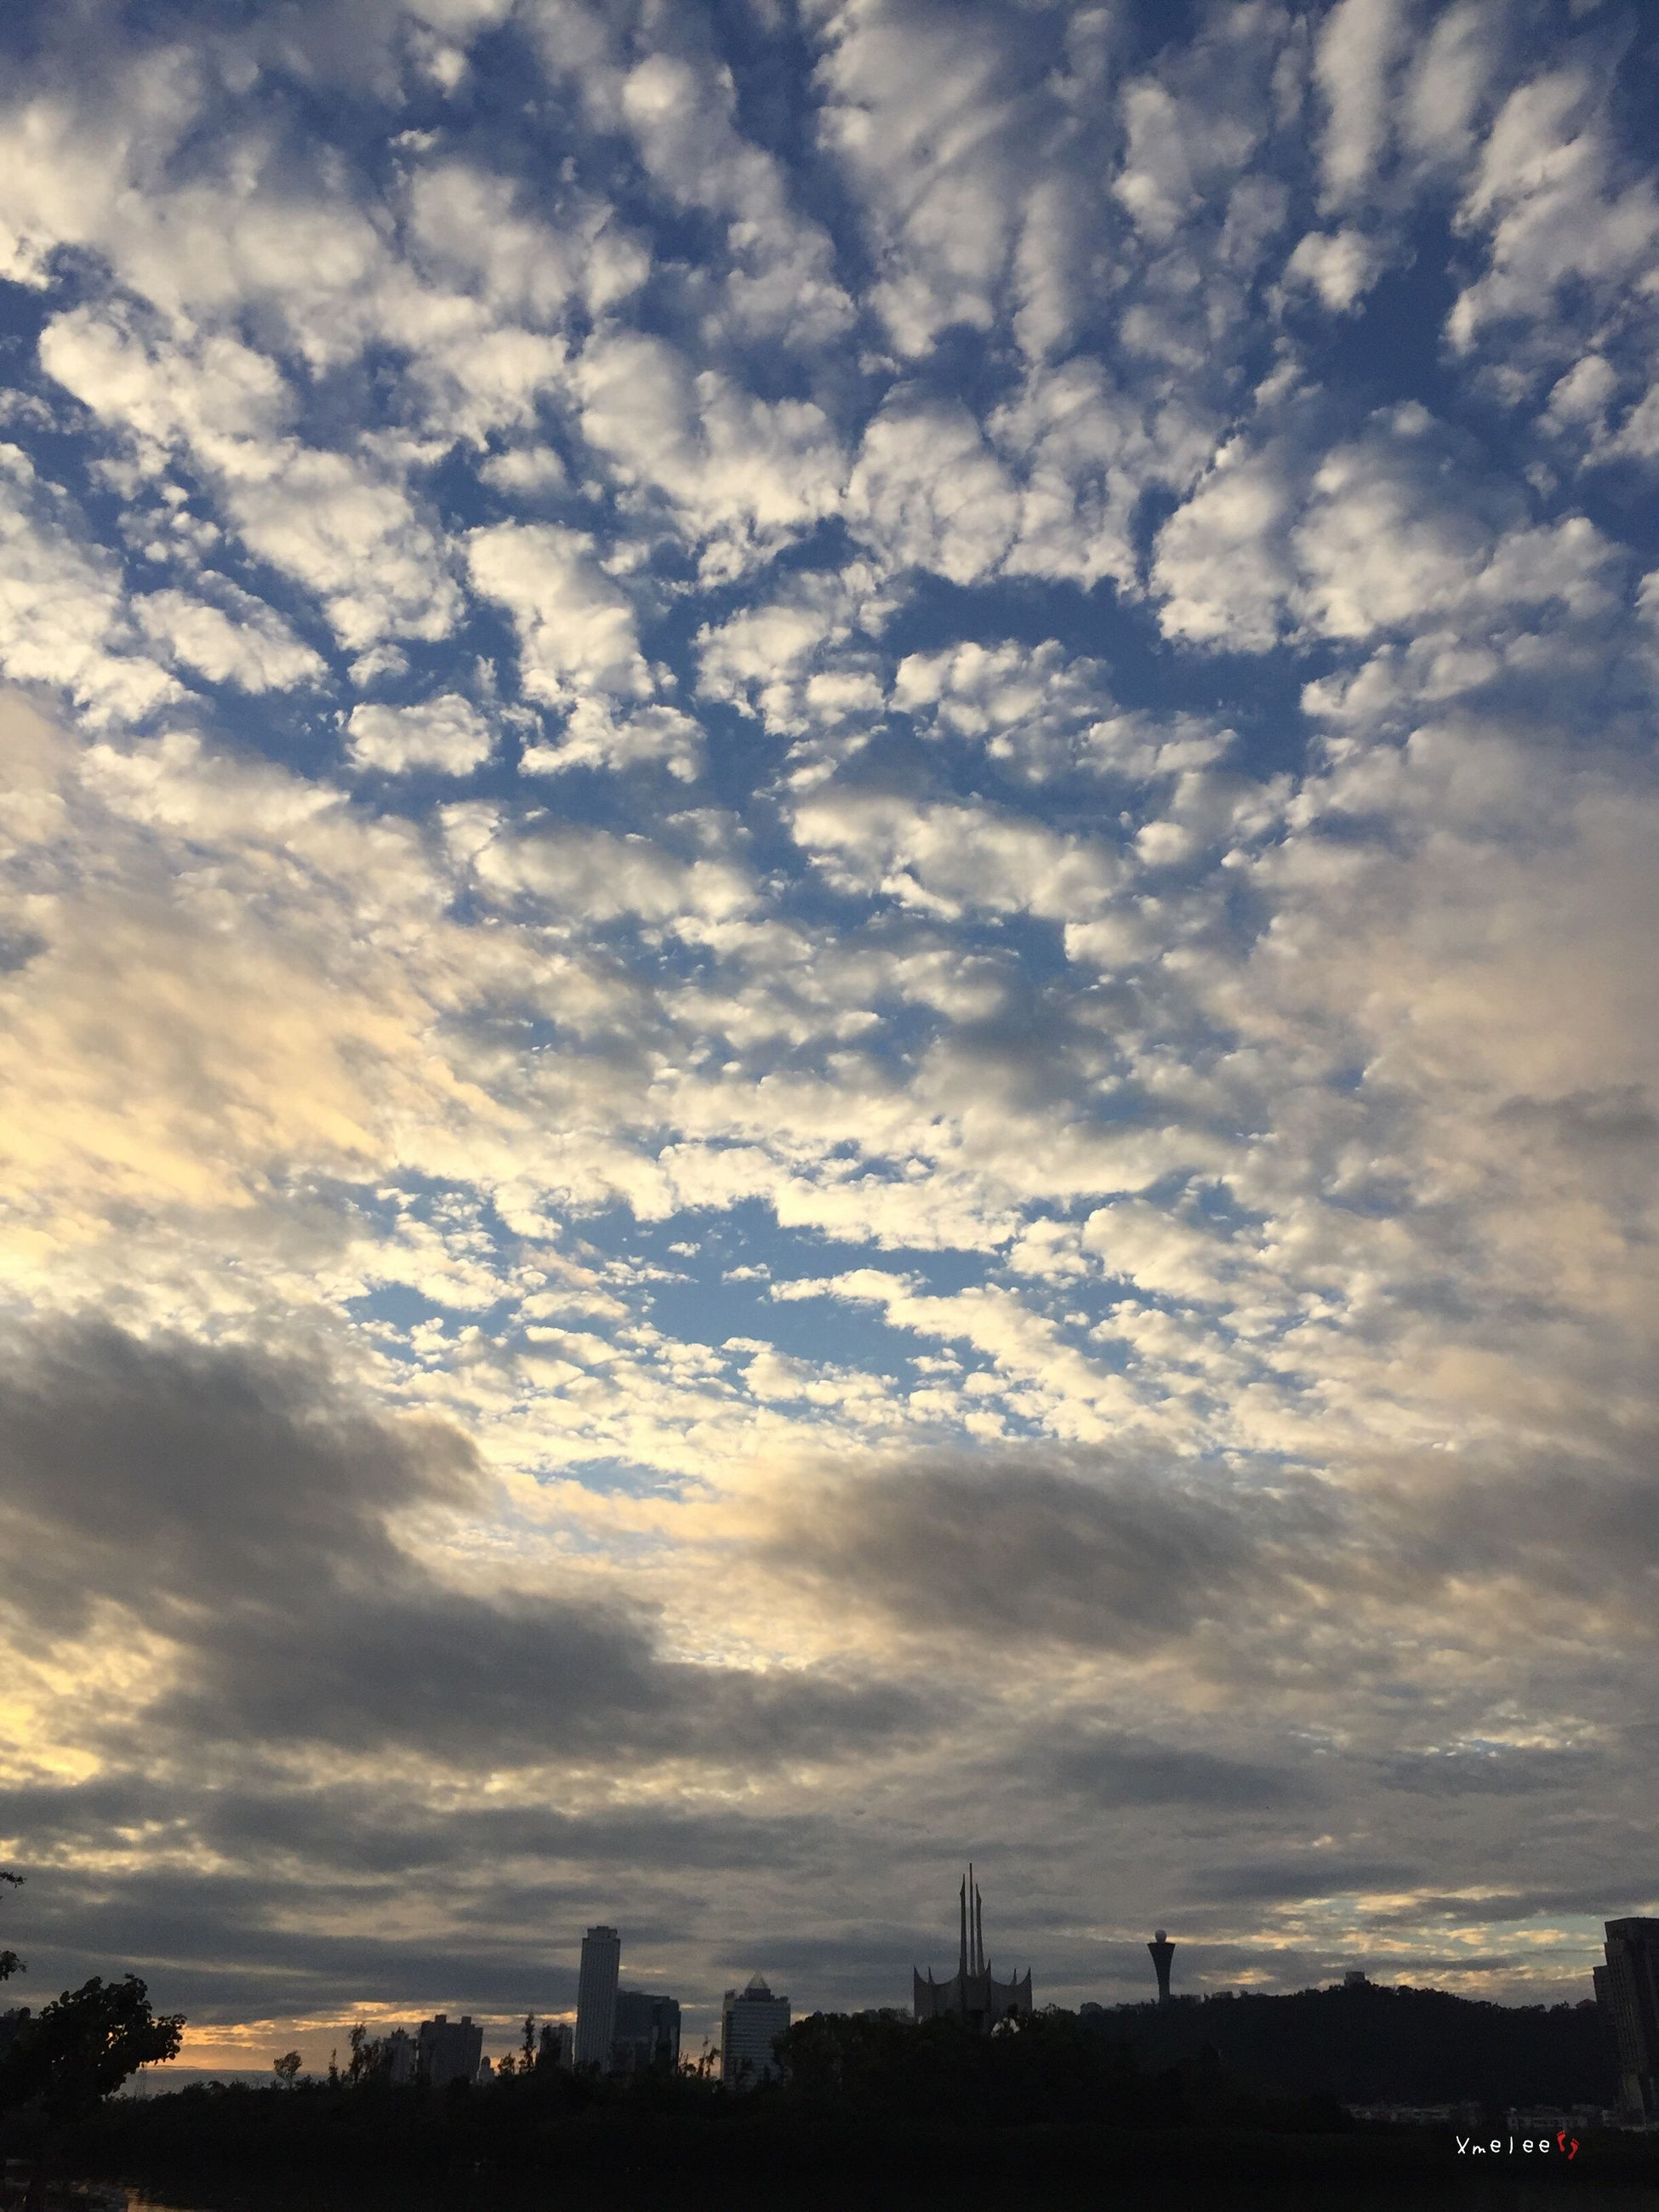 cloud - sky, sky, silhouette, sunset, outdoors, nature, no people, dramatic sky, low angle view, scenics, tree, beauty in nature, city, urban skyline, architecture, cityscape, day